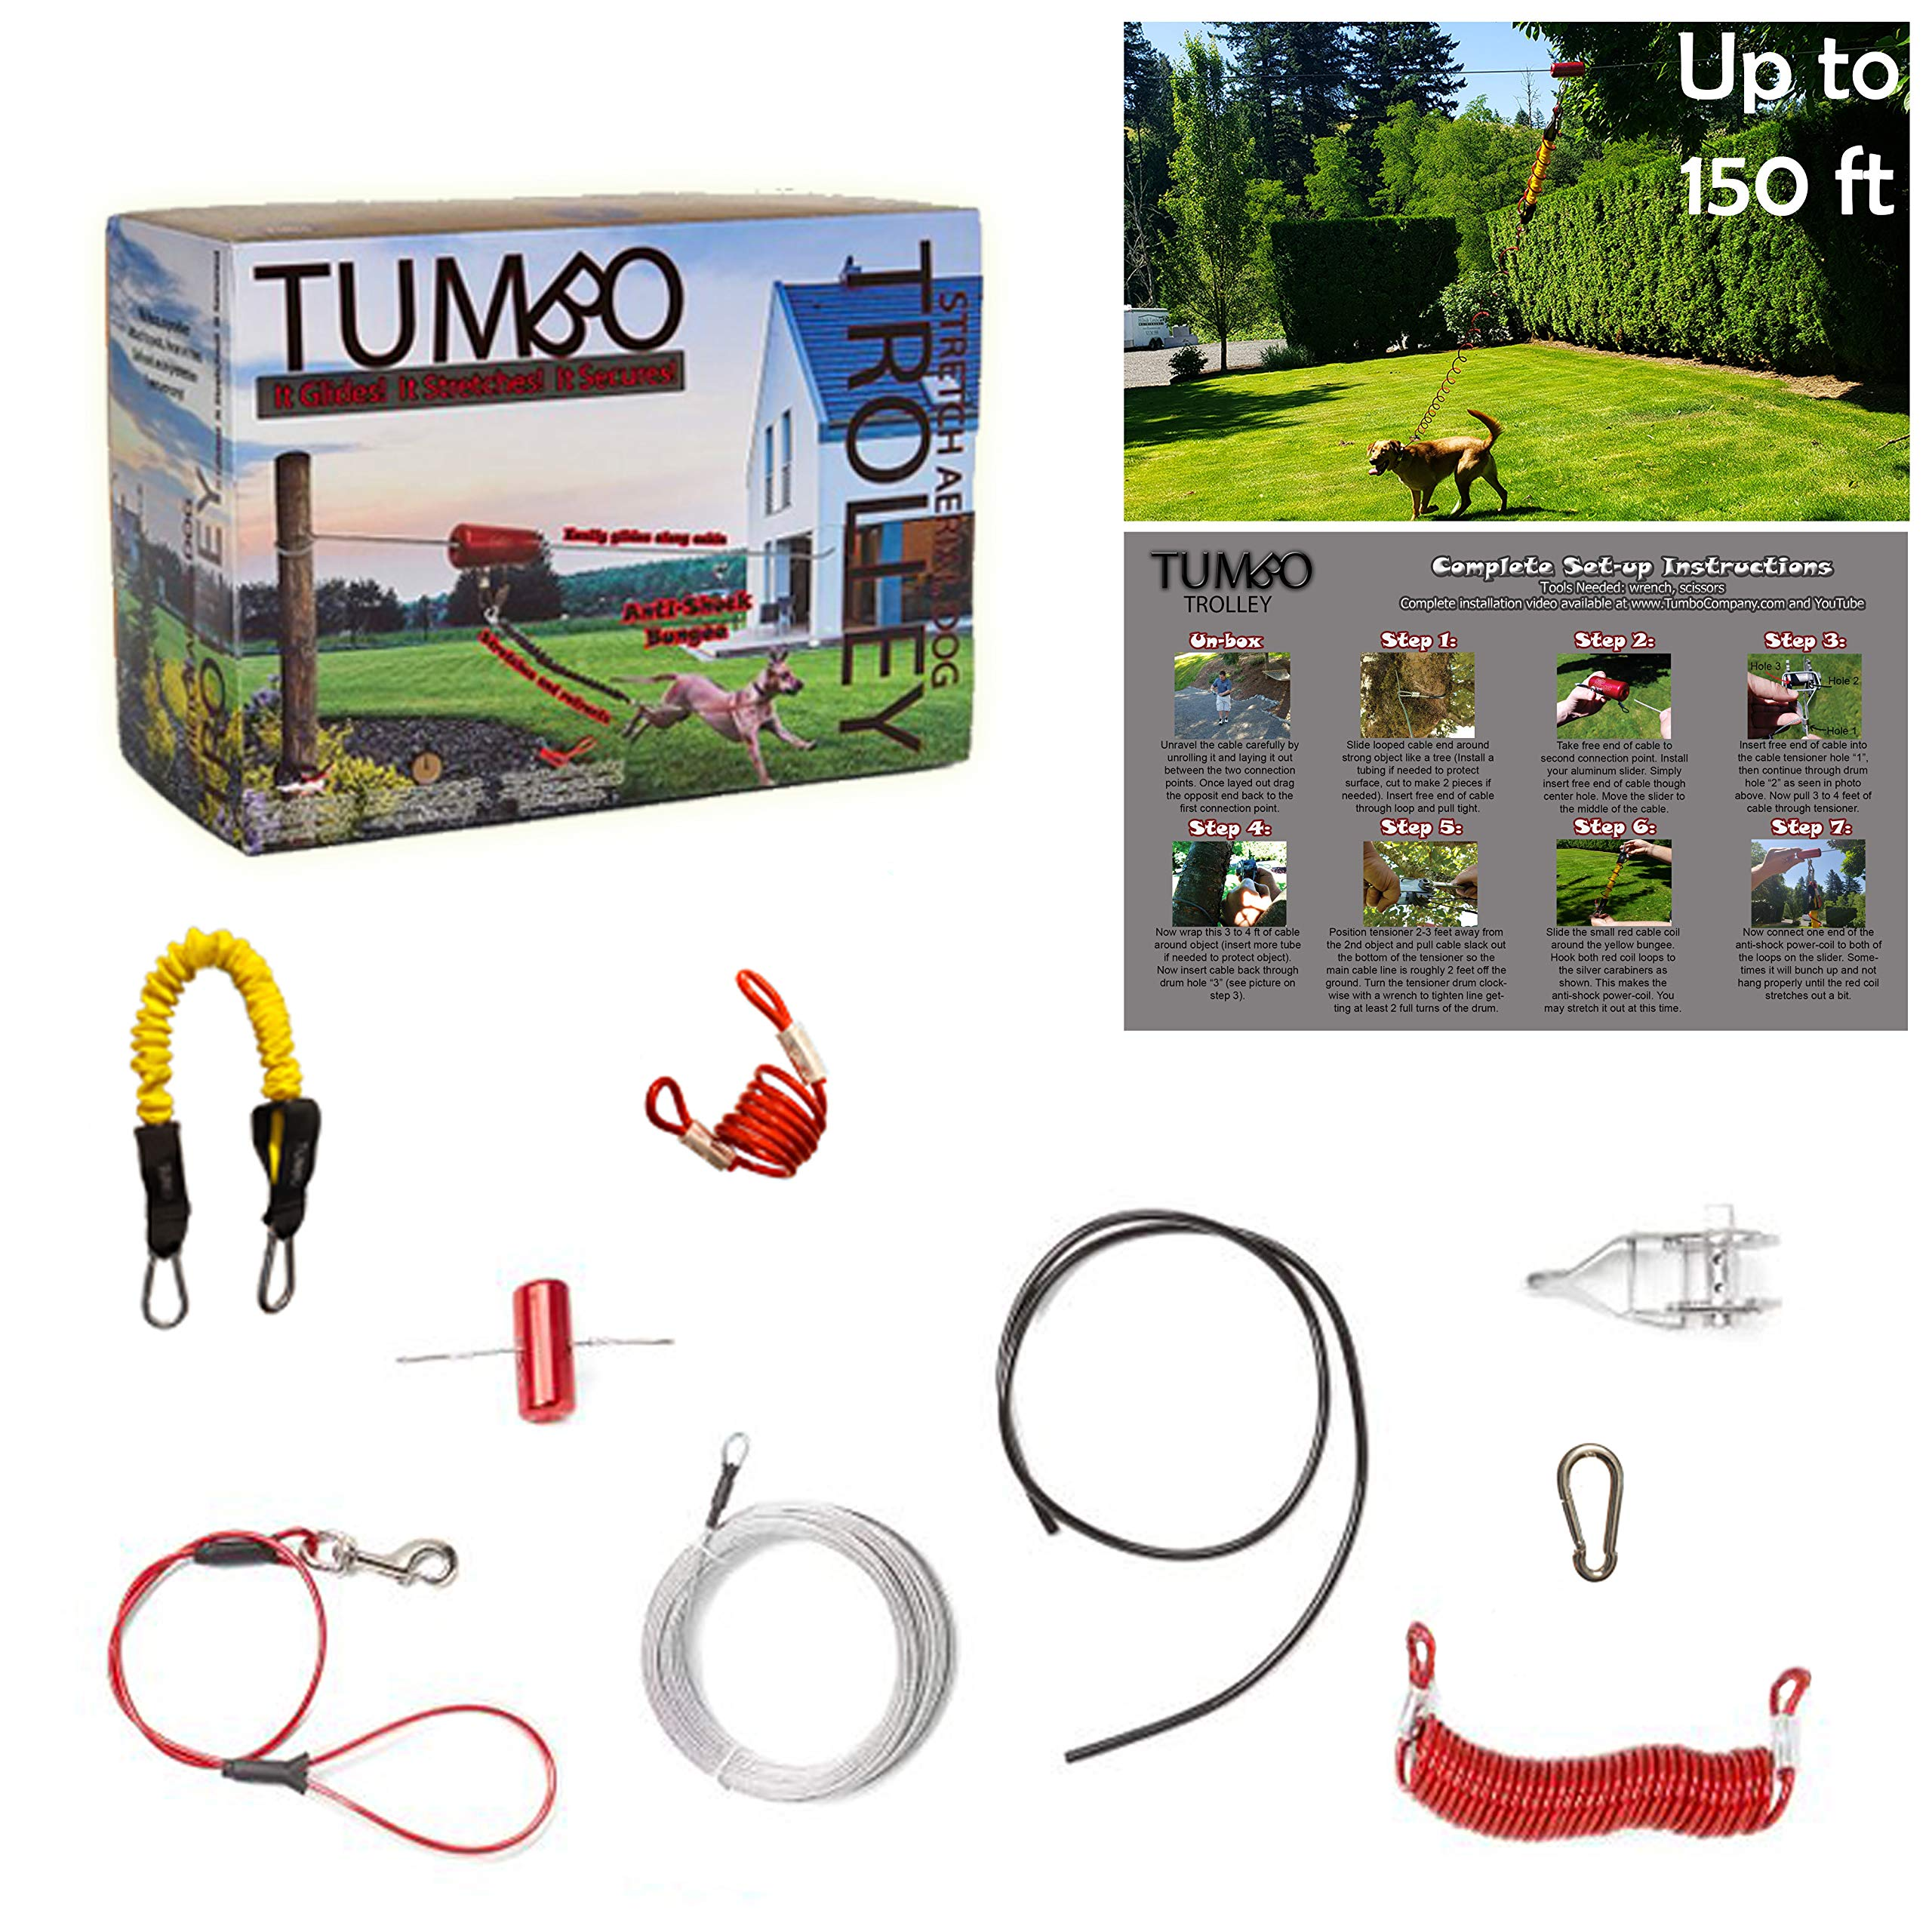 Tumbo Trolley Dog 150 ft Containment System - Stretching Coil Cable with Anti-Shock Bungee (Safer and Less tangles) Aerial Dog Tie Out by Tumbo